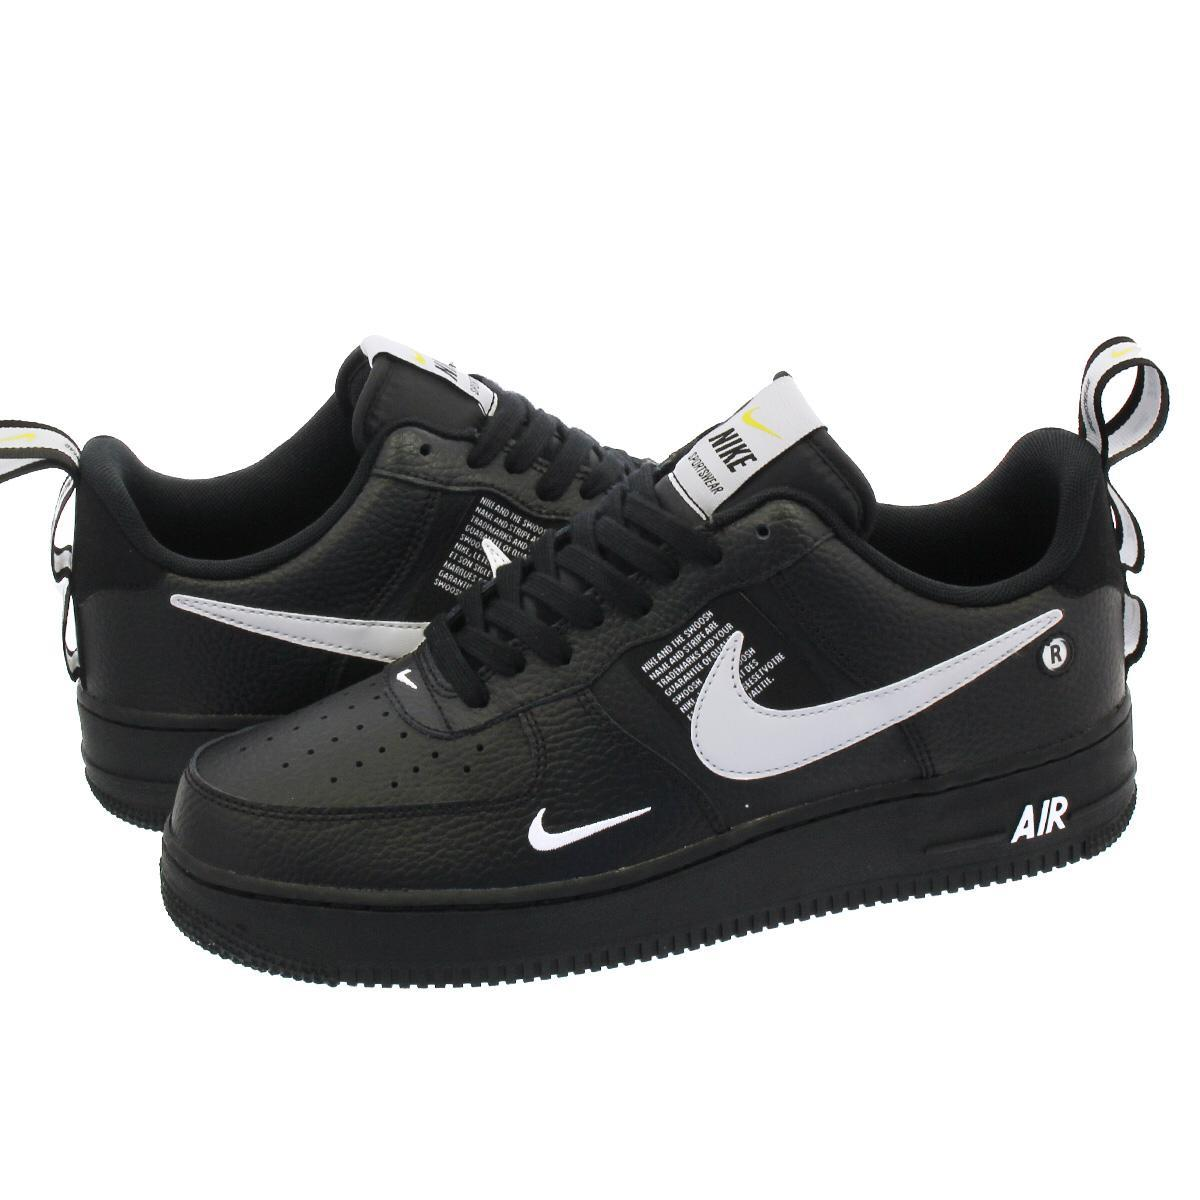 air force 1 utility black